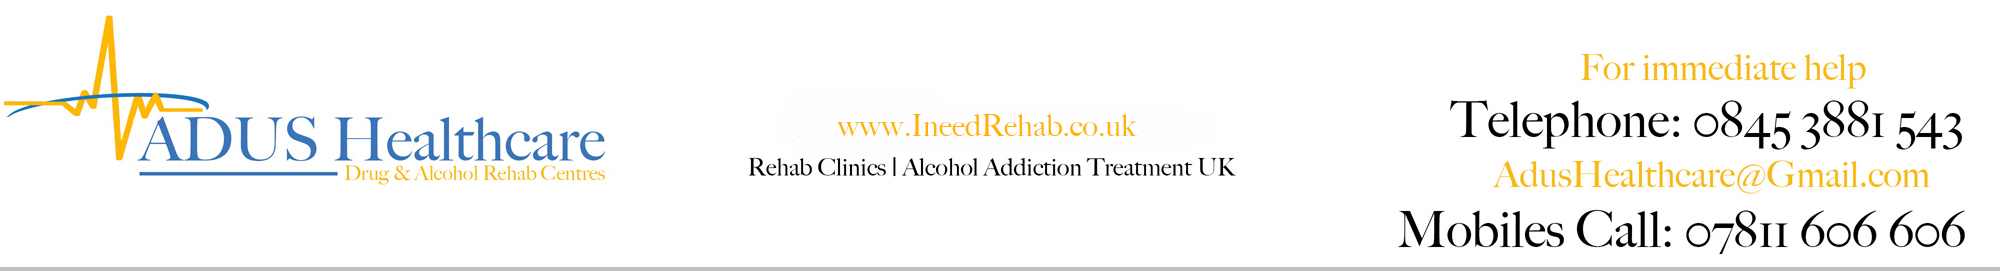 I Need Rehab | Alcohol & Drug Rehab